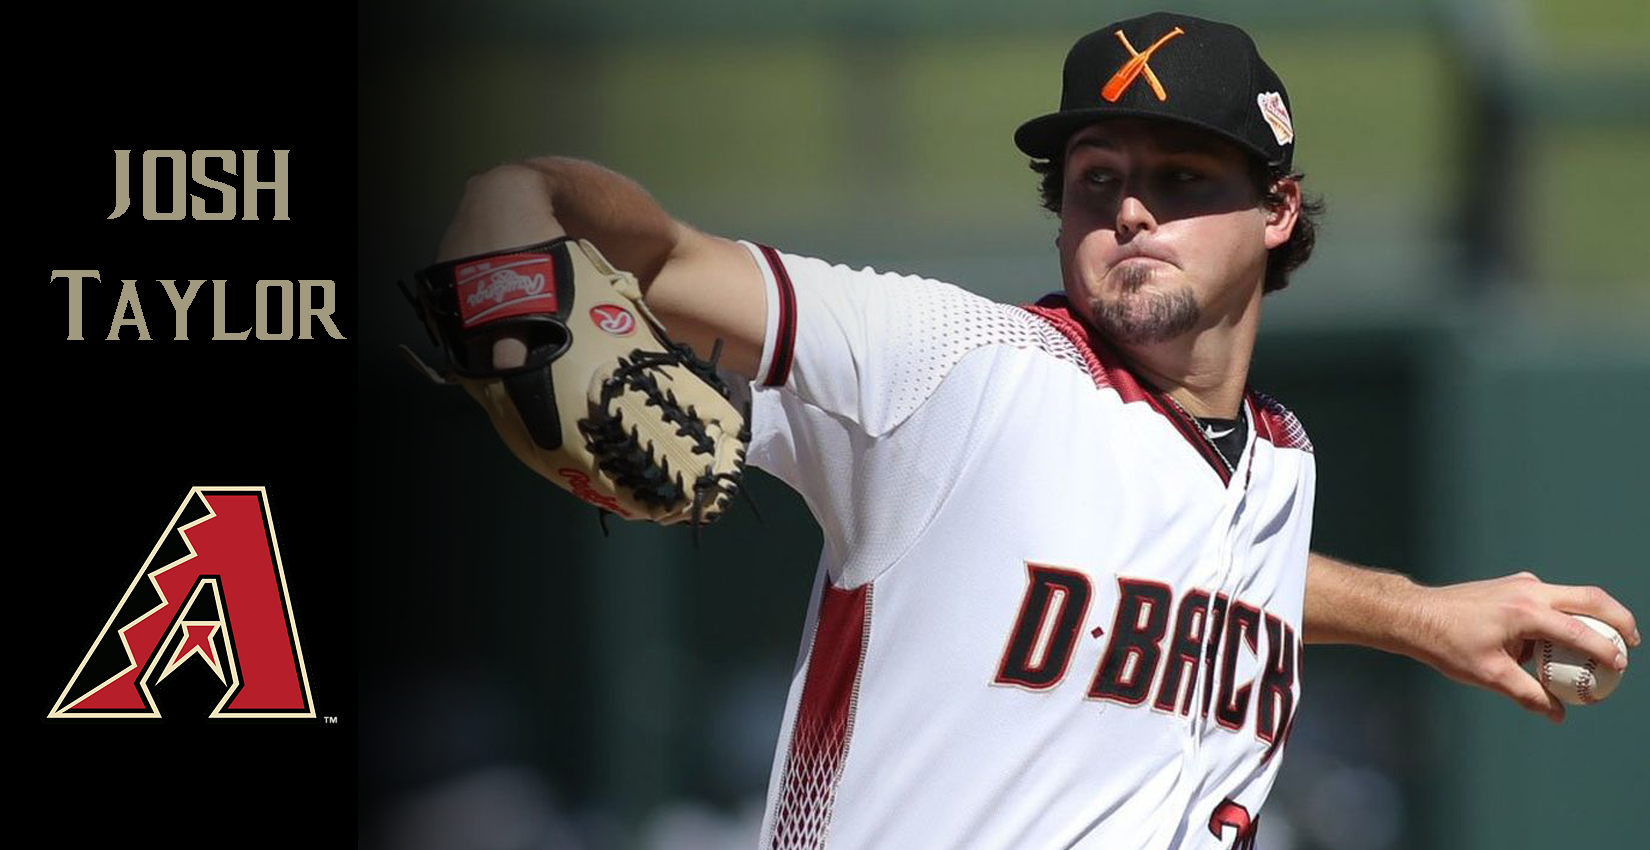 Former Bobcat Southpaw Josh Taylor Competing in Diamondbacks Spring Training